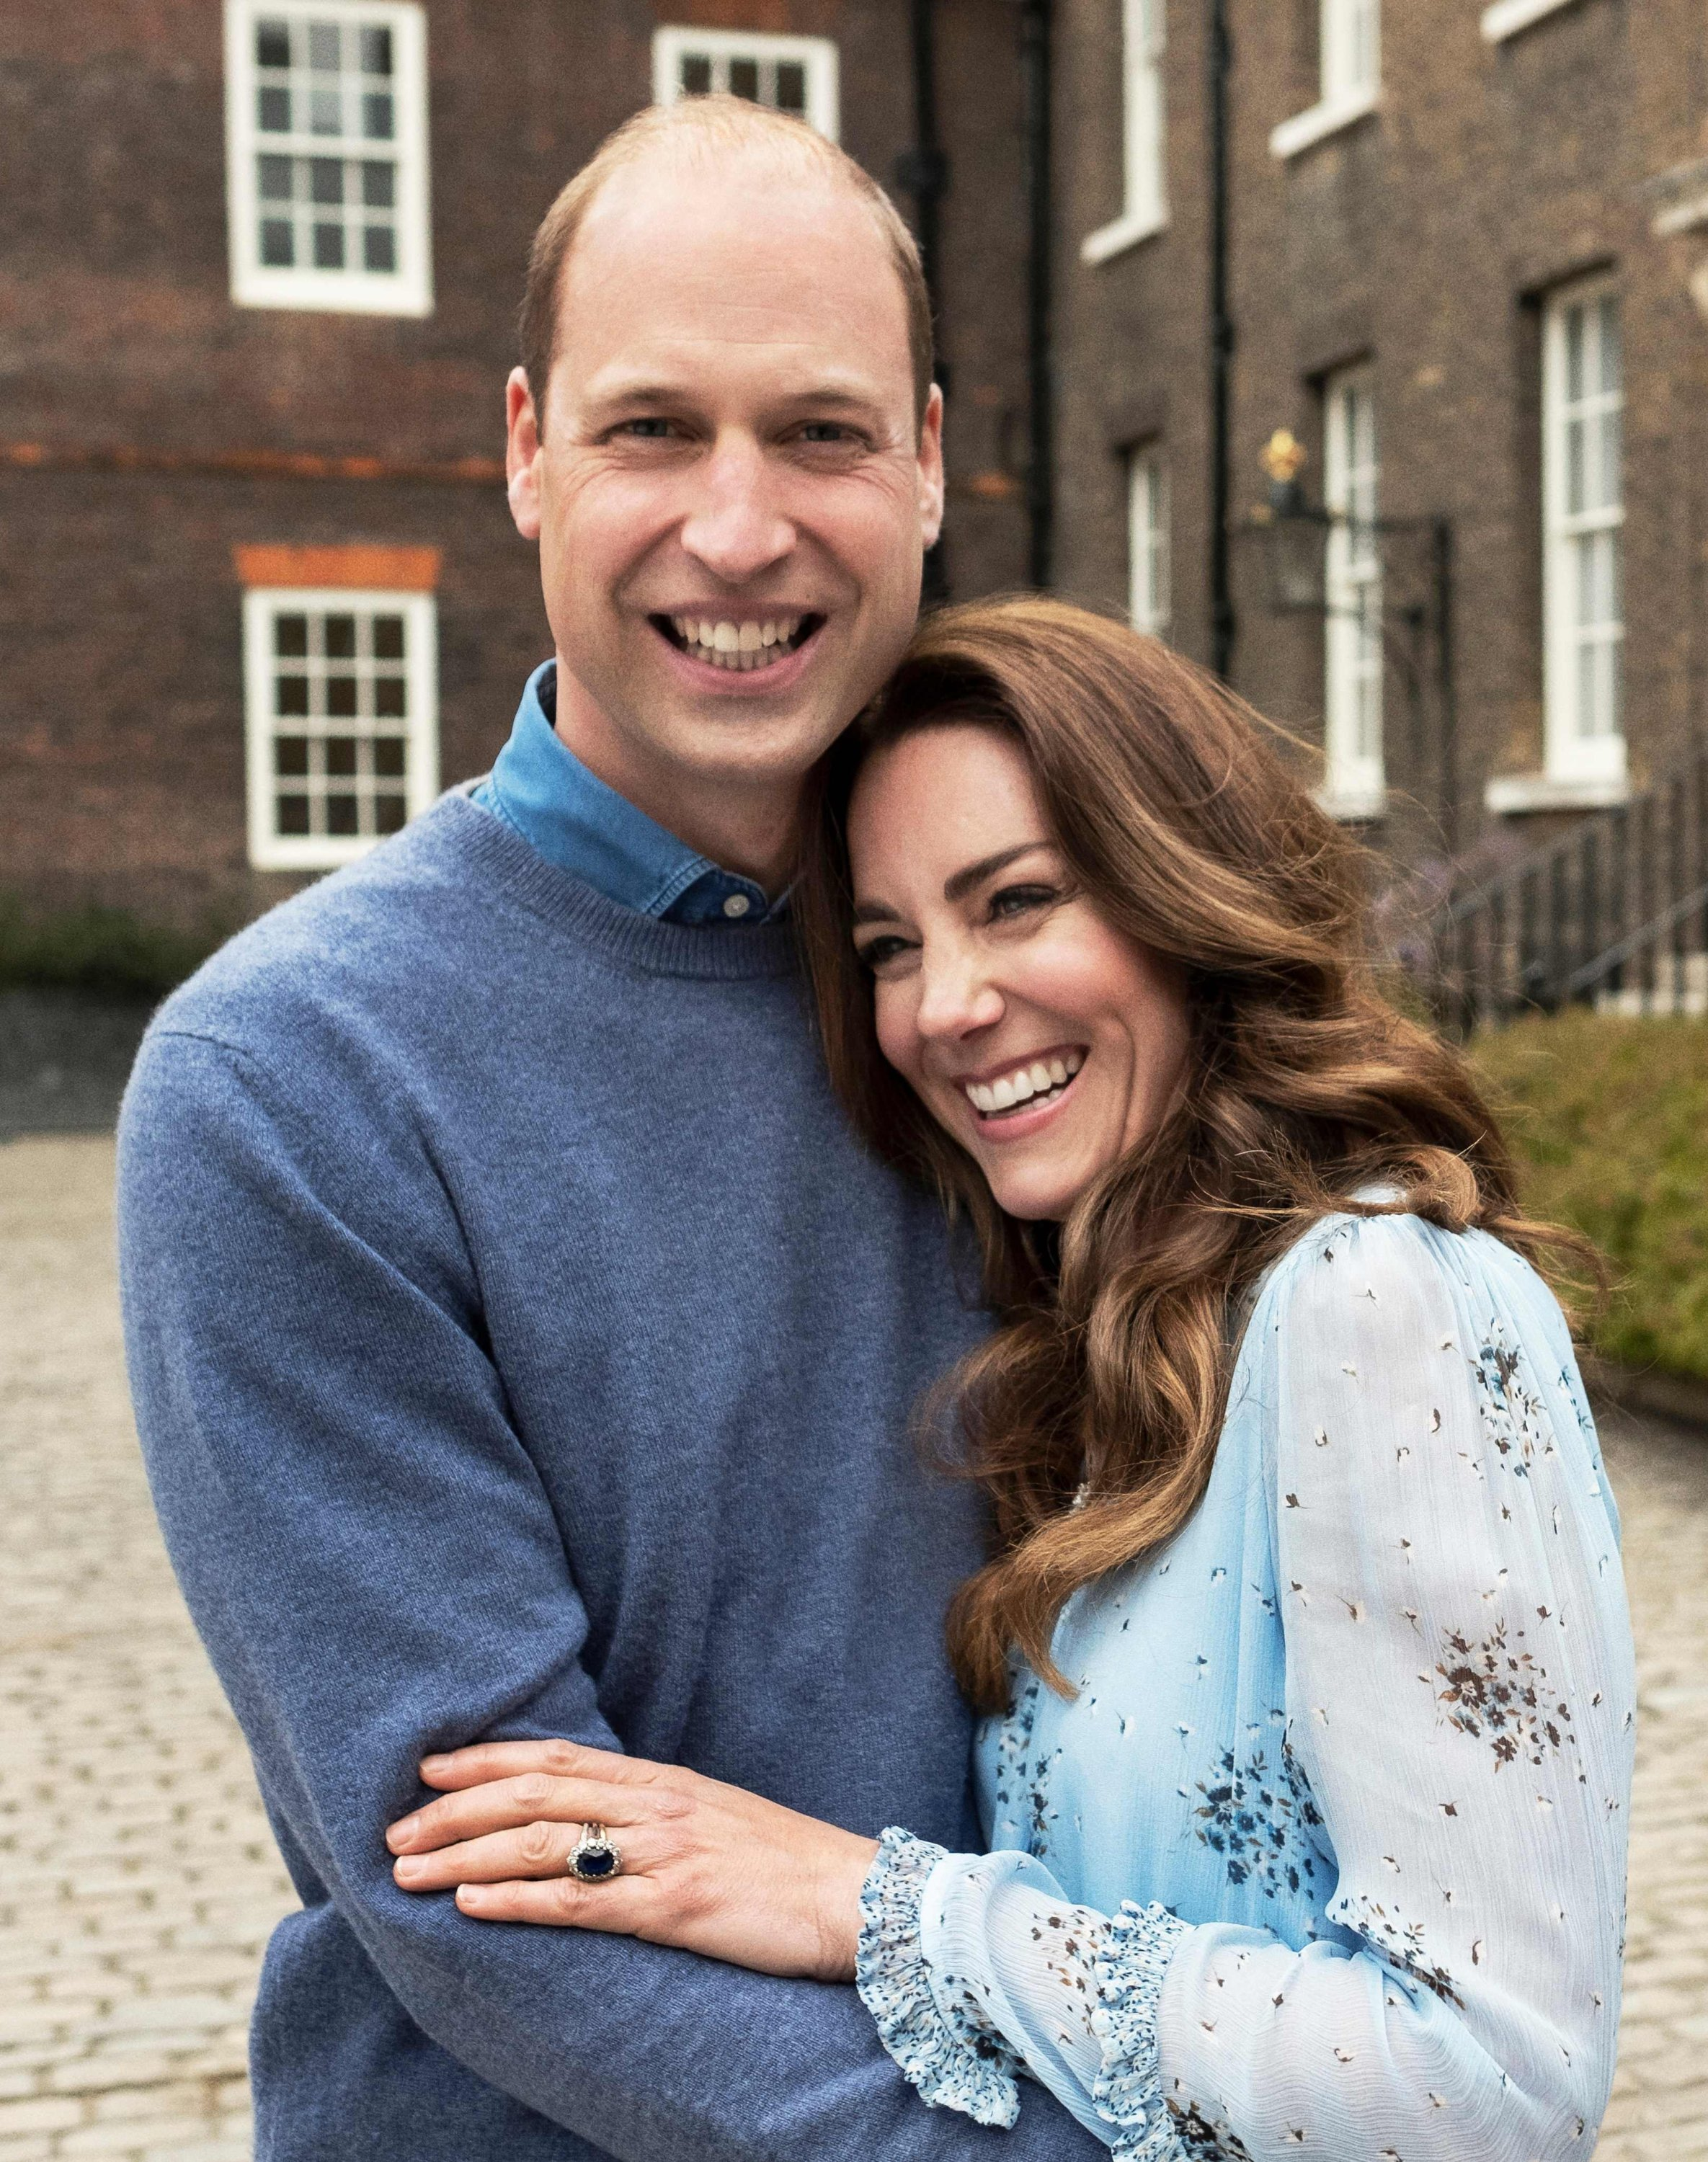 Prince William (L), Duke of Cambridge, and Catherine, Duchess of Cambridge, pose for a picture to celebrate their 10th wedding anniversary at Kensingtong Palace, London, the U.K., April 28, 2021. (Kensington Palace via AFP)